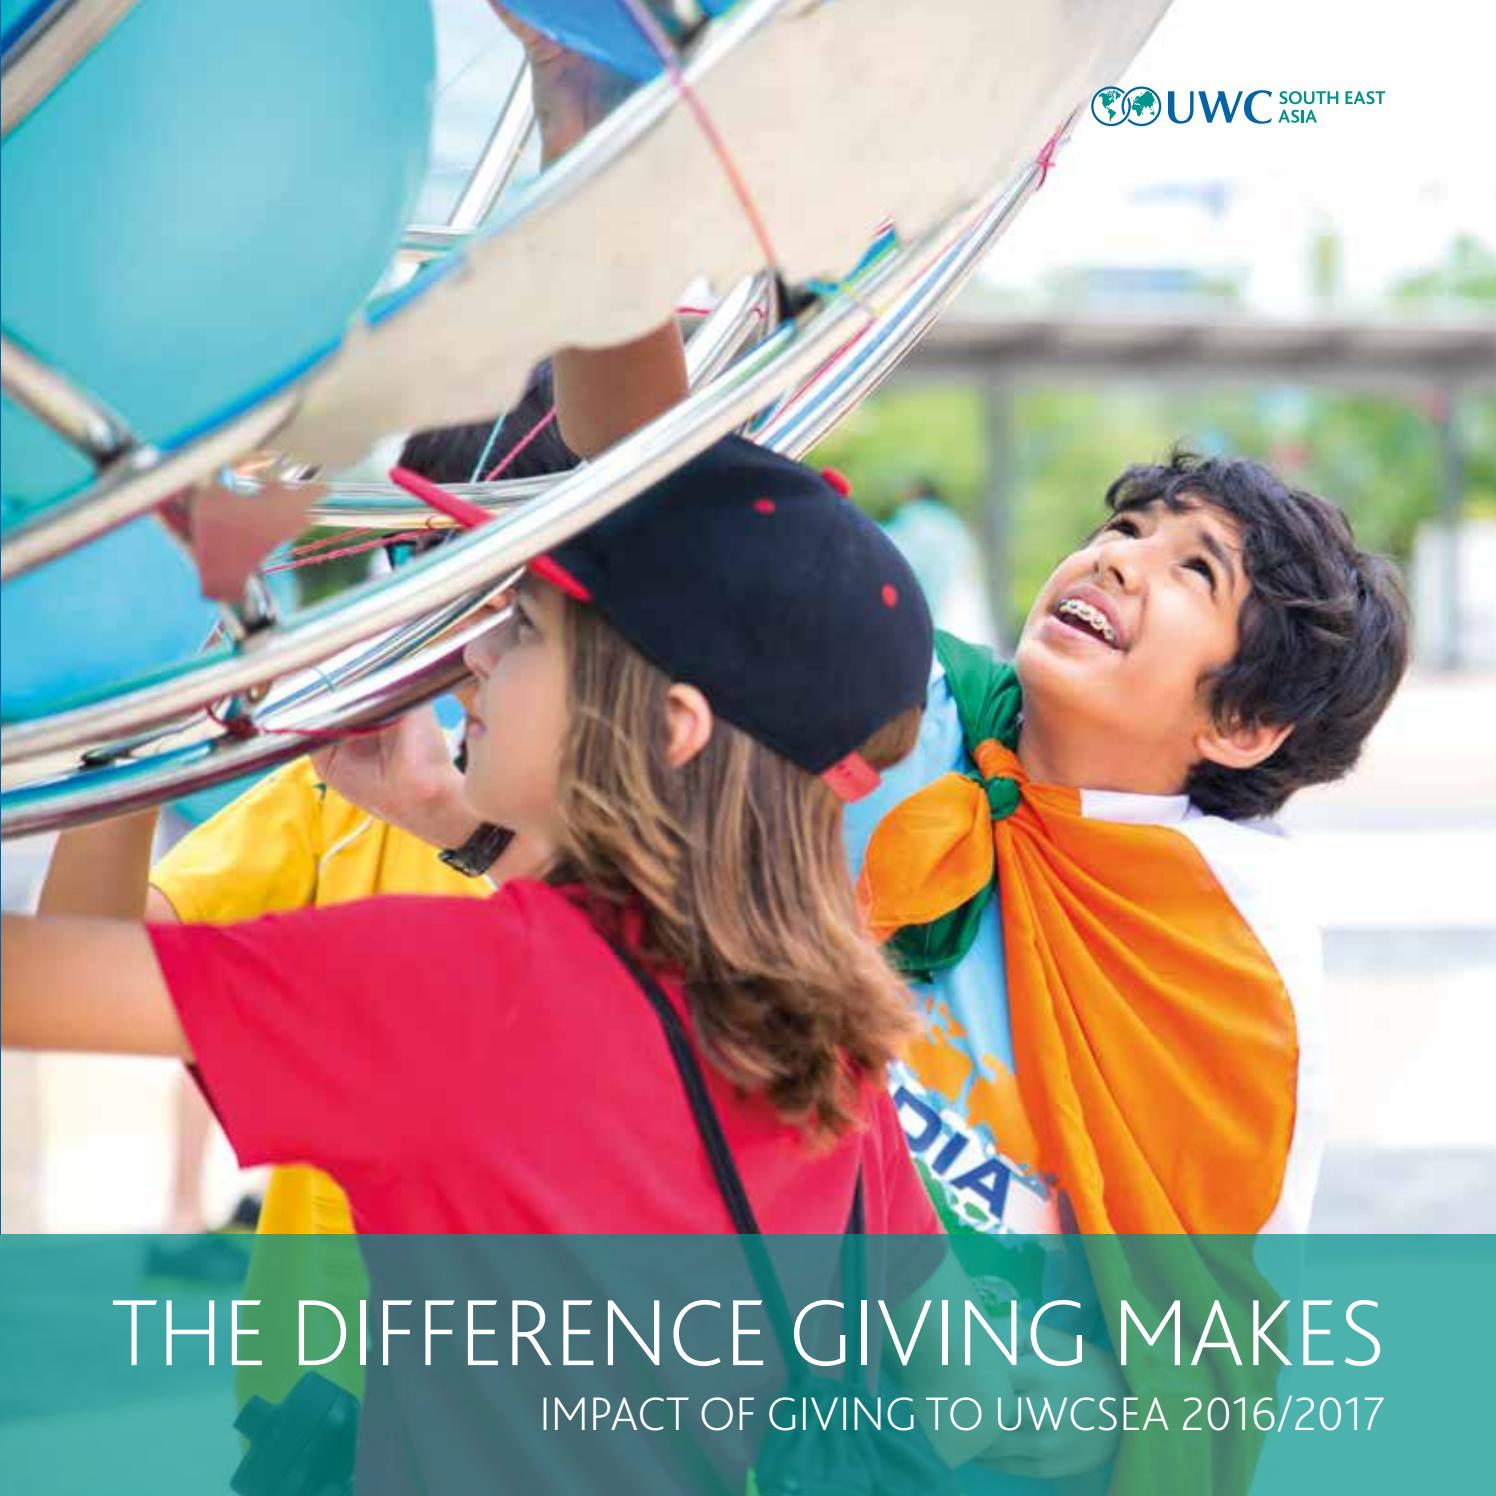 Impact of Giving to UWCSEA 2016/2017 by uwcsea - issuu